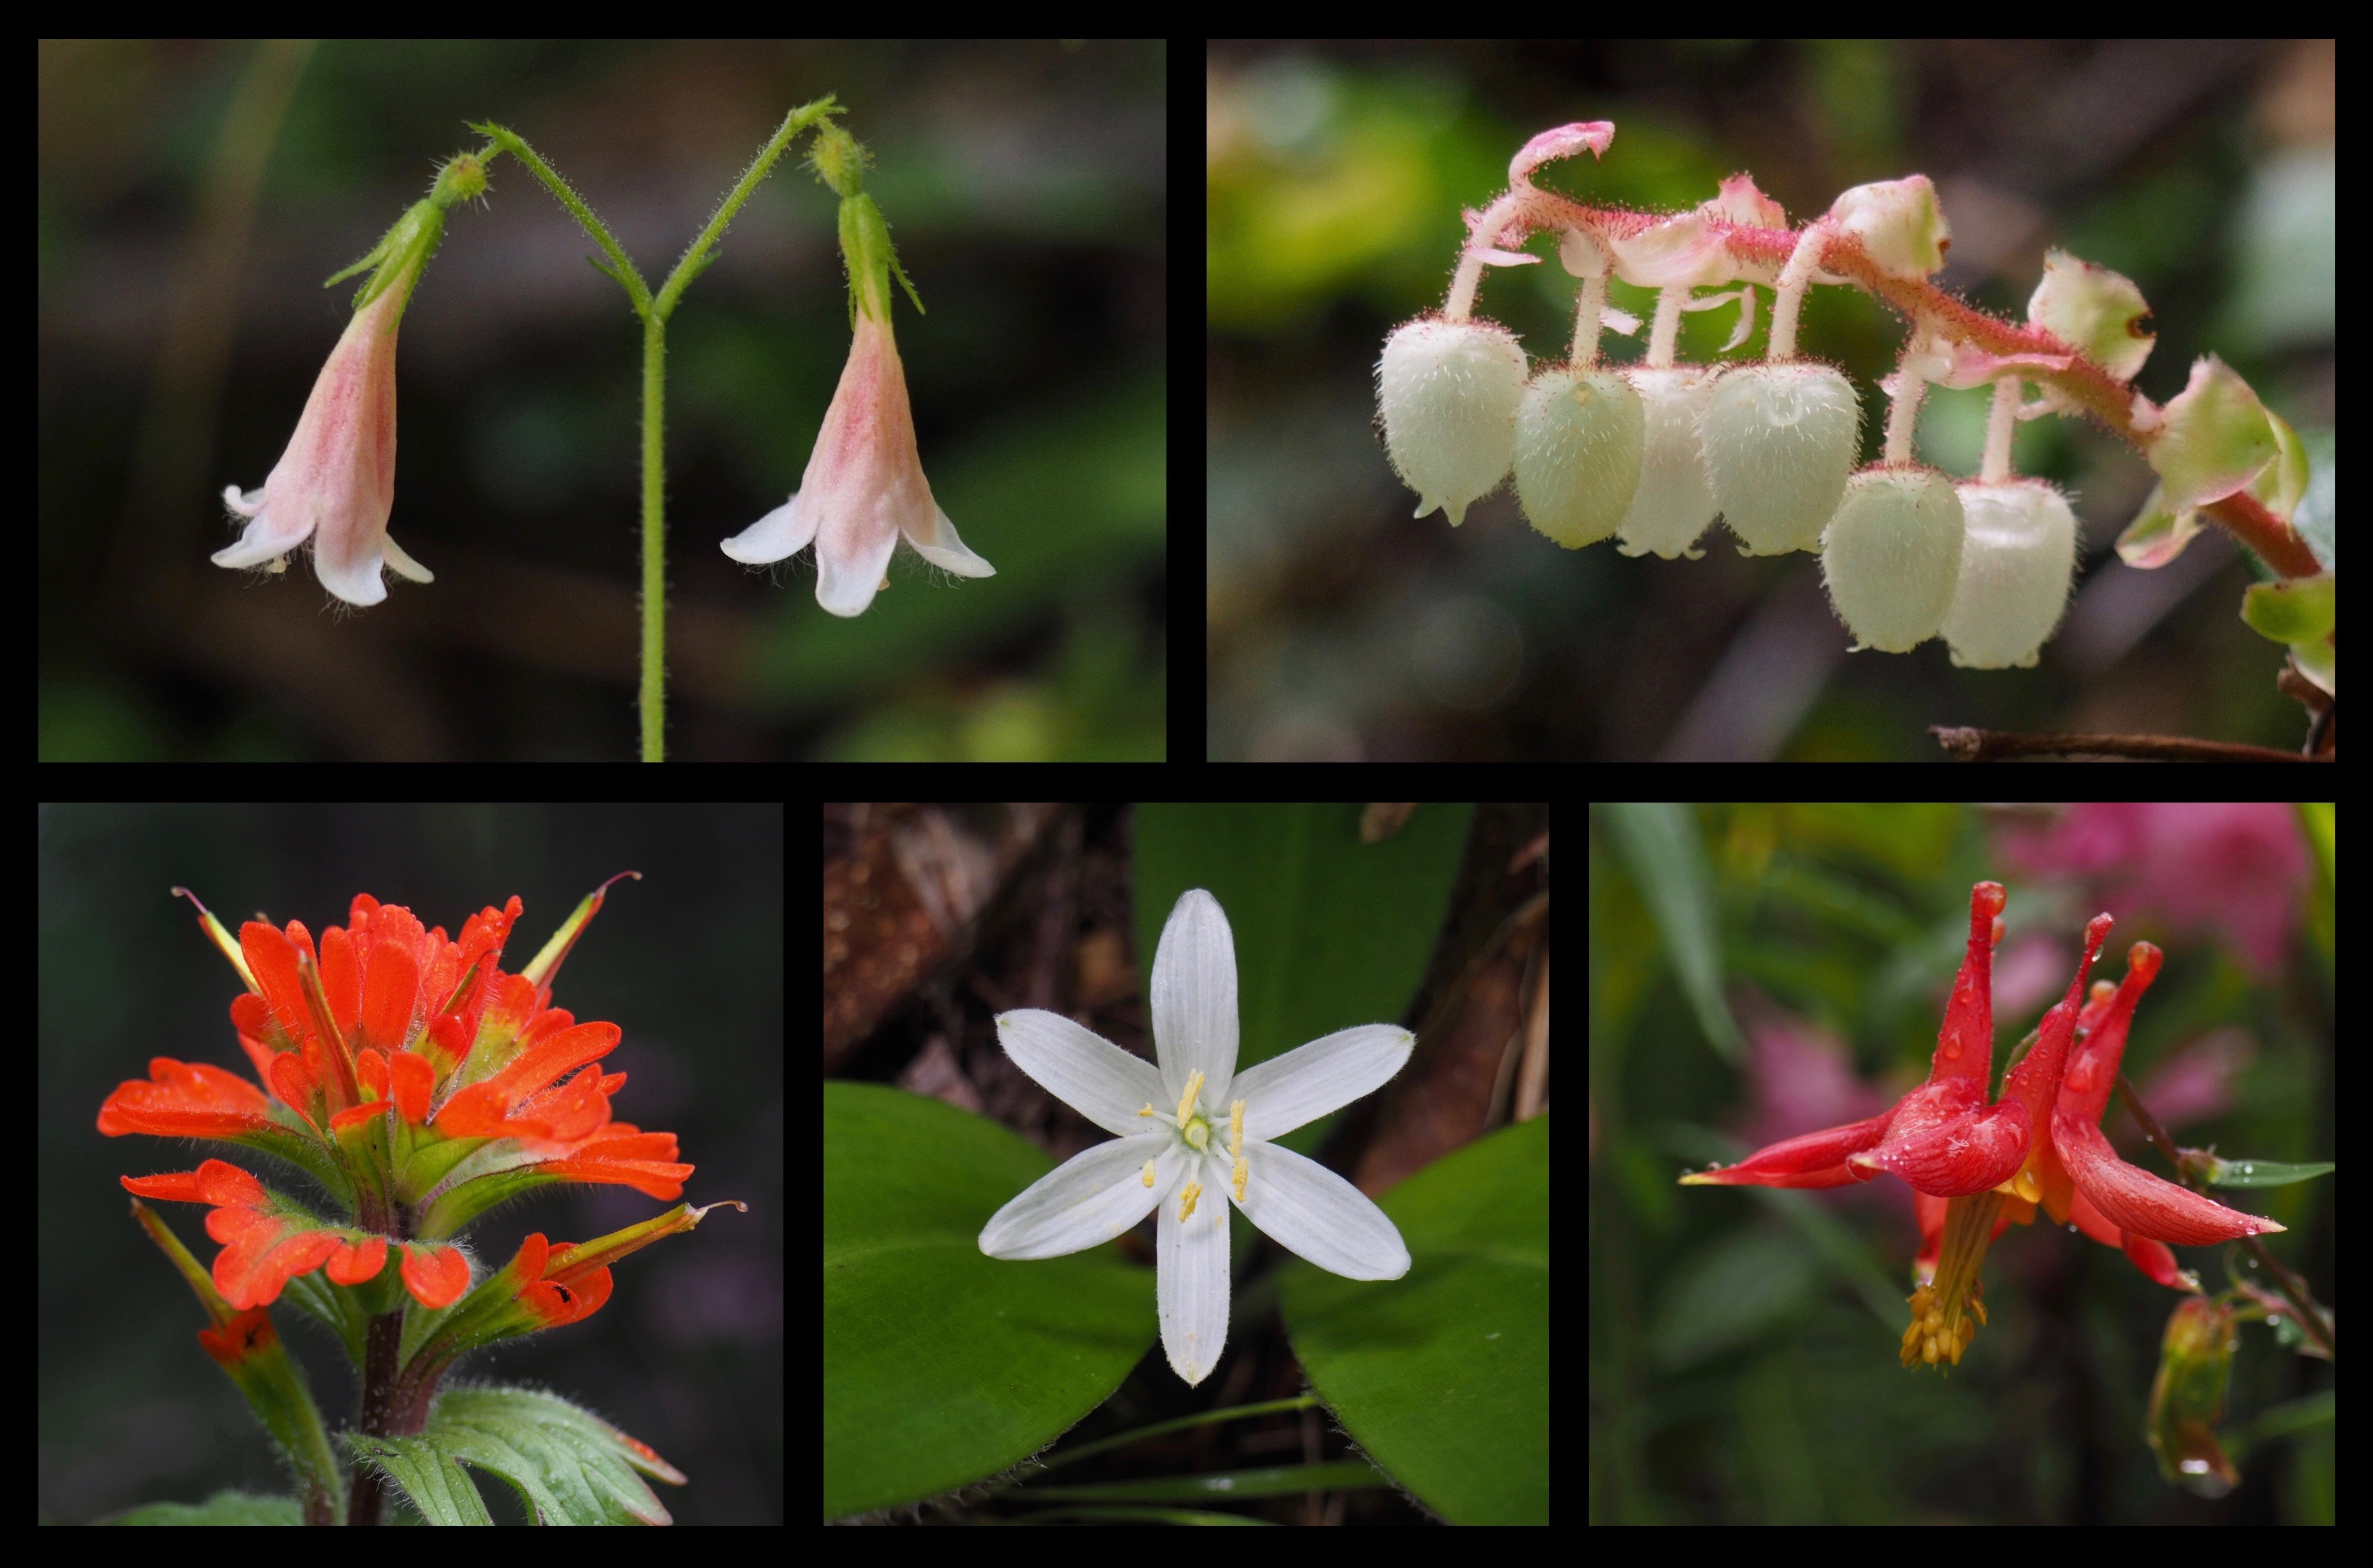 Many other wildflowers brighten the spring woodland, including, clockwise from top left, American twinflowers (Linnaea borealis), salal (Gaultheria shallon), western, or, Sitka columbines (Aquilegia formosa), queen's cups (Clintonia uniflora), and harsh paintbrushes (Castilleja hispida). Mount Zion Trail, June 15 and 19, 2016.